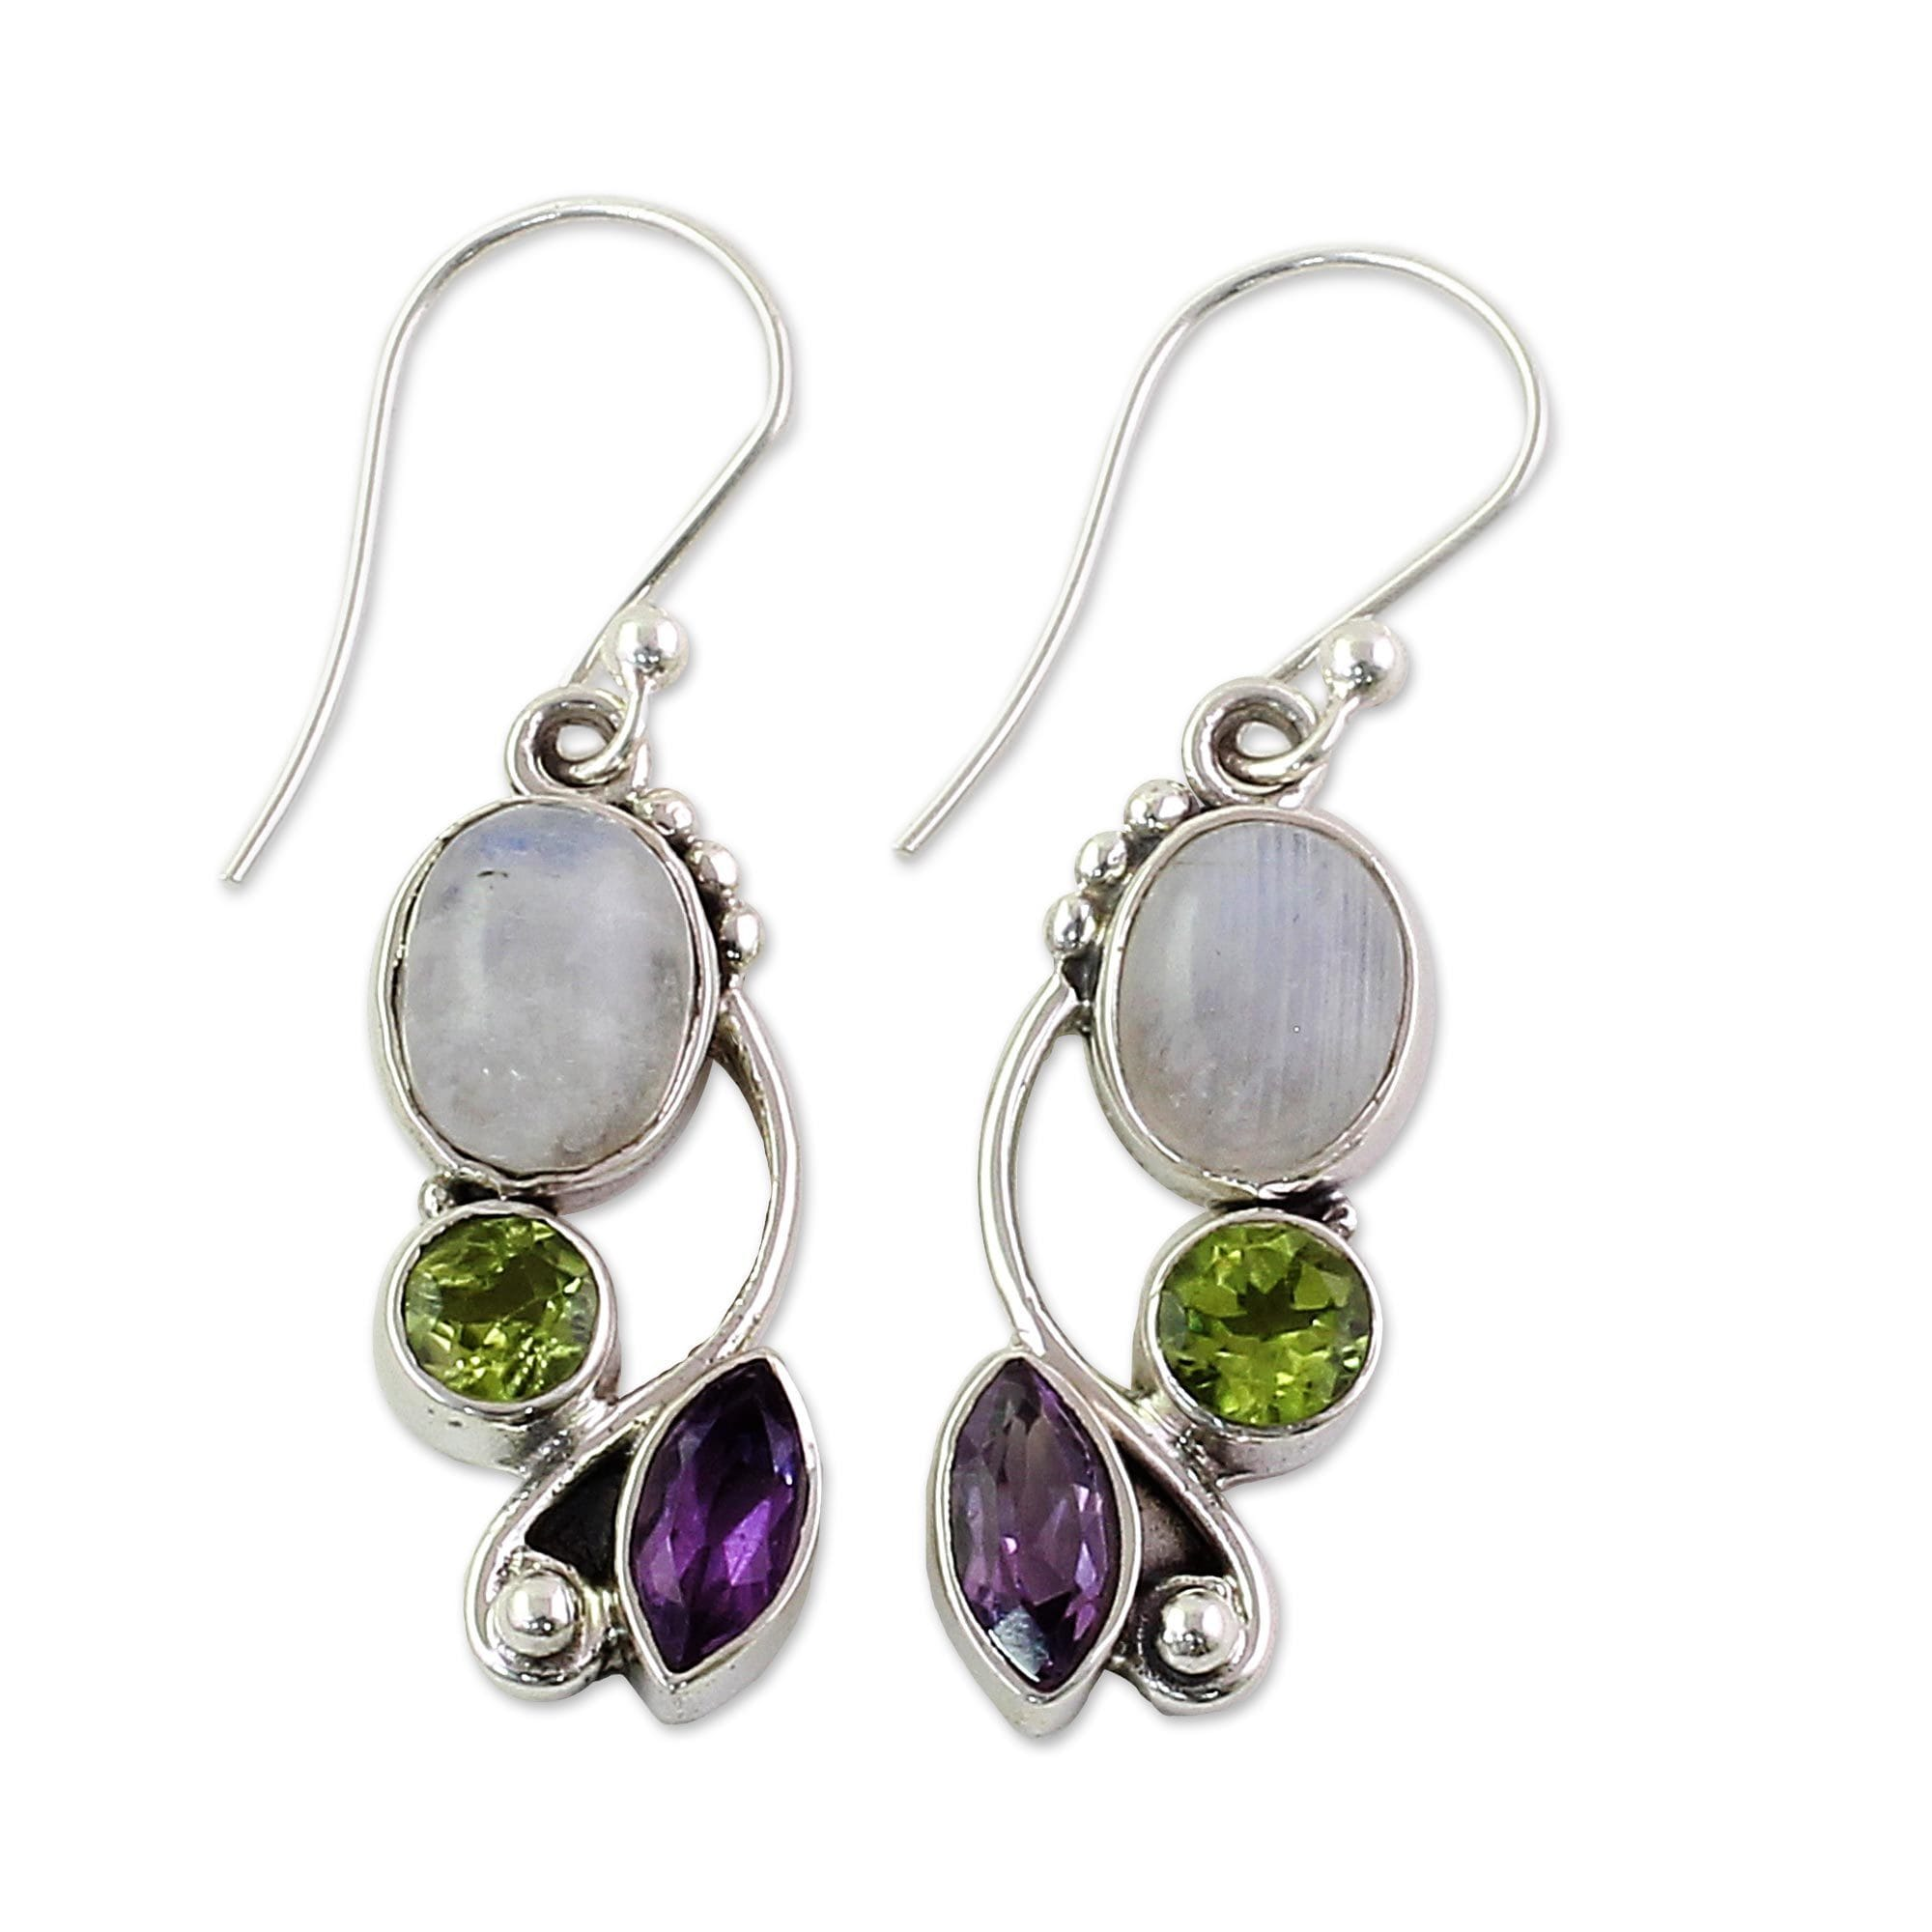 Handmade Sterling Silver Natural Glamour Multi Gemstone Earrings India White On Free Shipping Orders Over 45